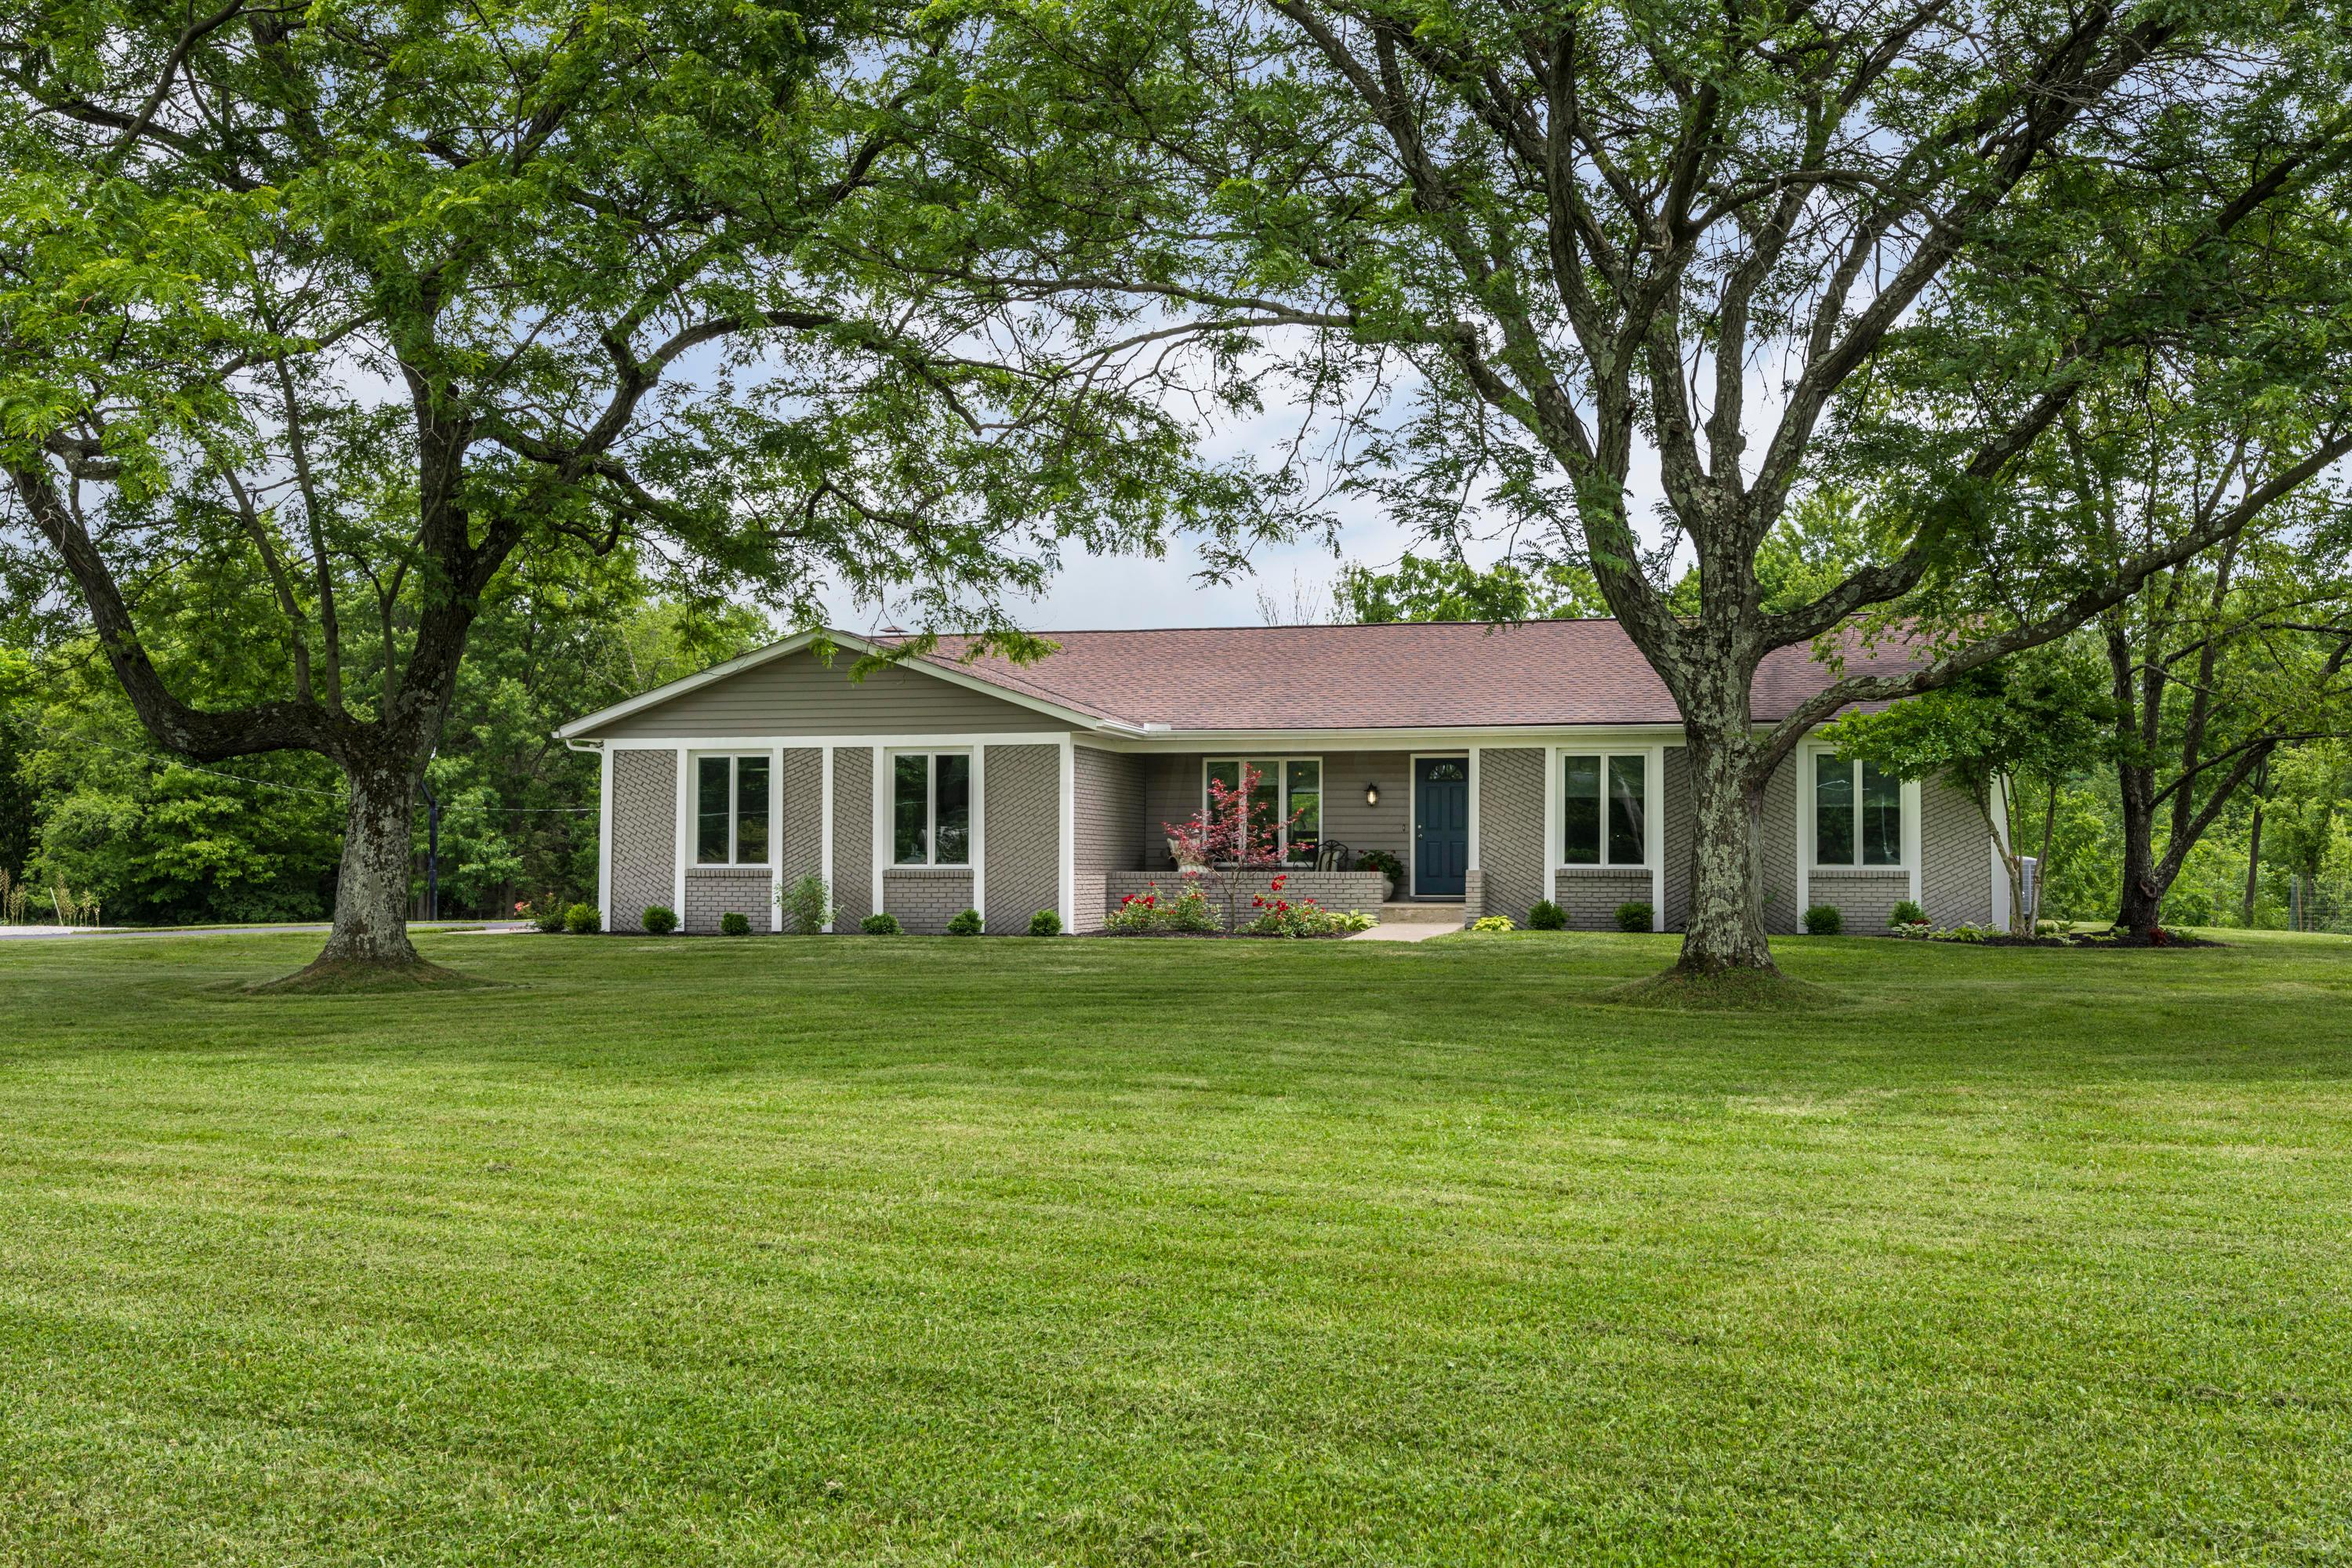 Photo of 5818 Kitzmiller Road, New Albany, OH 43054